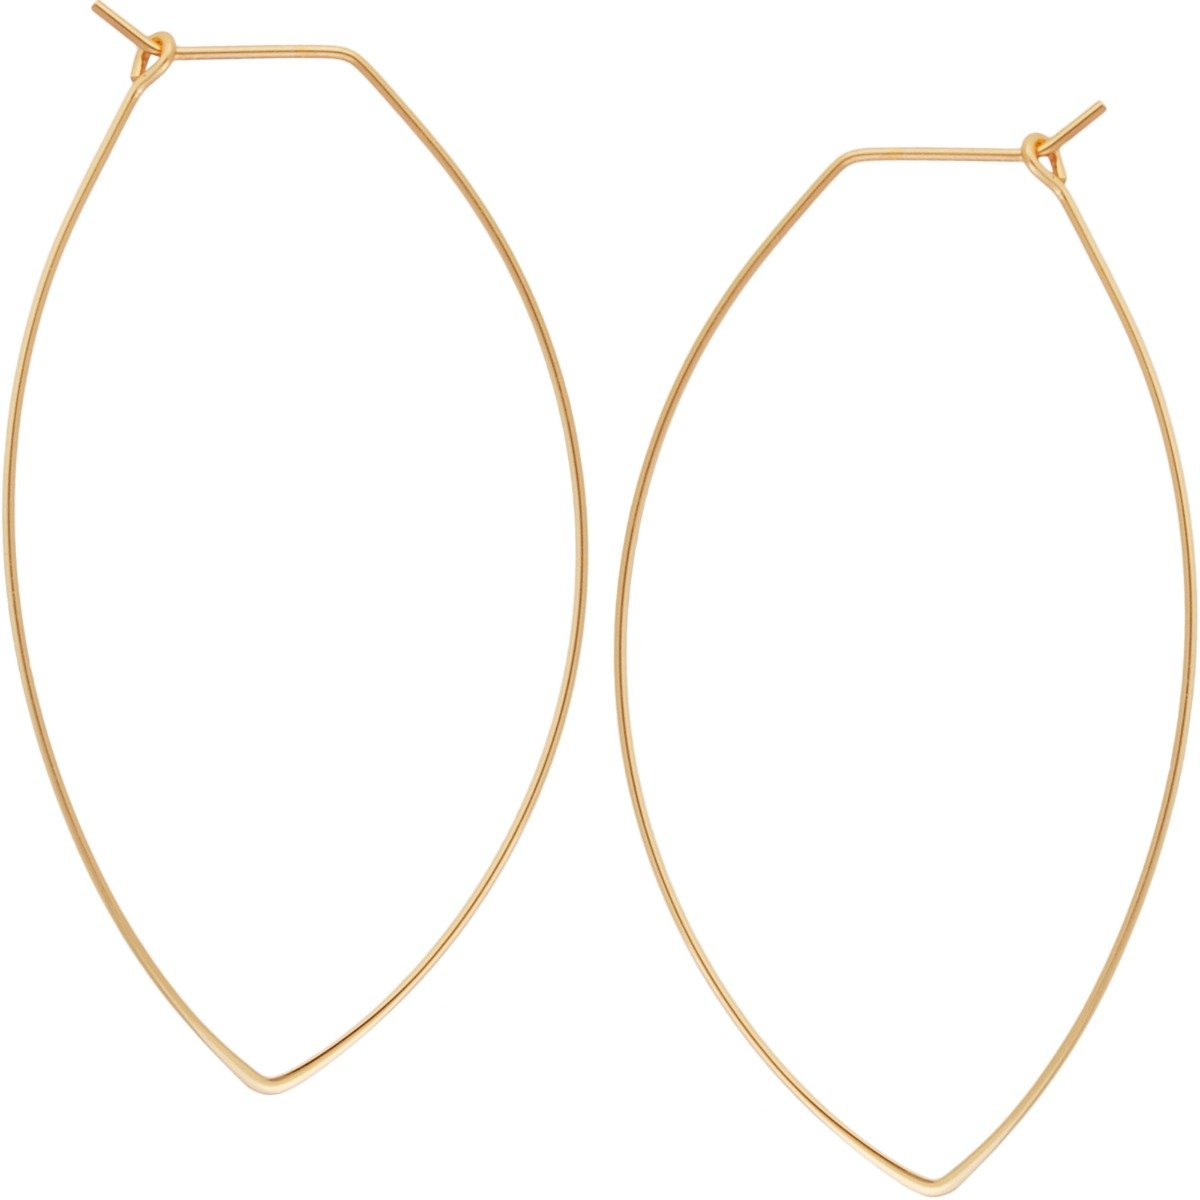 Marquise Threader Big Hoop Earrings - Lightweight Oval Leaf Statement Drop Dangles, Marquise 24K Yellow, Gold-Electroplated, Hypoallergenic, by Humble Chic NY